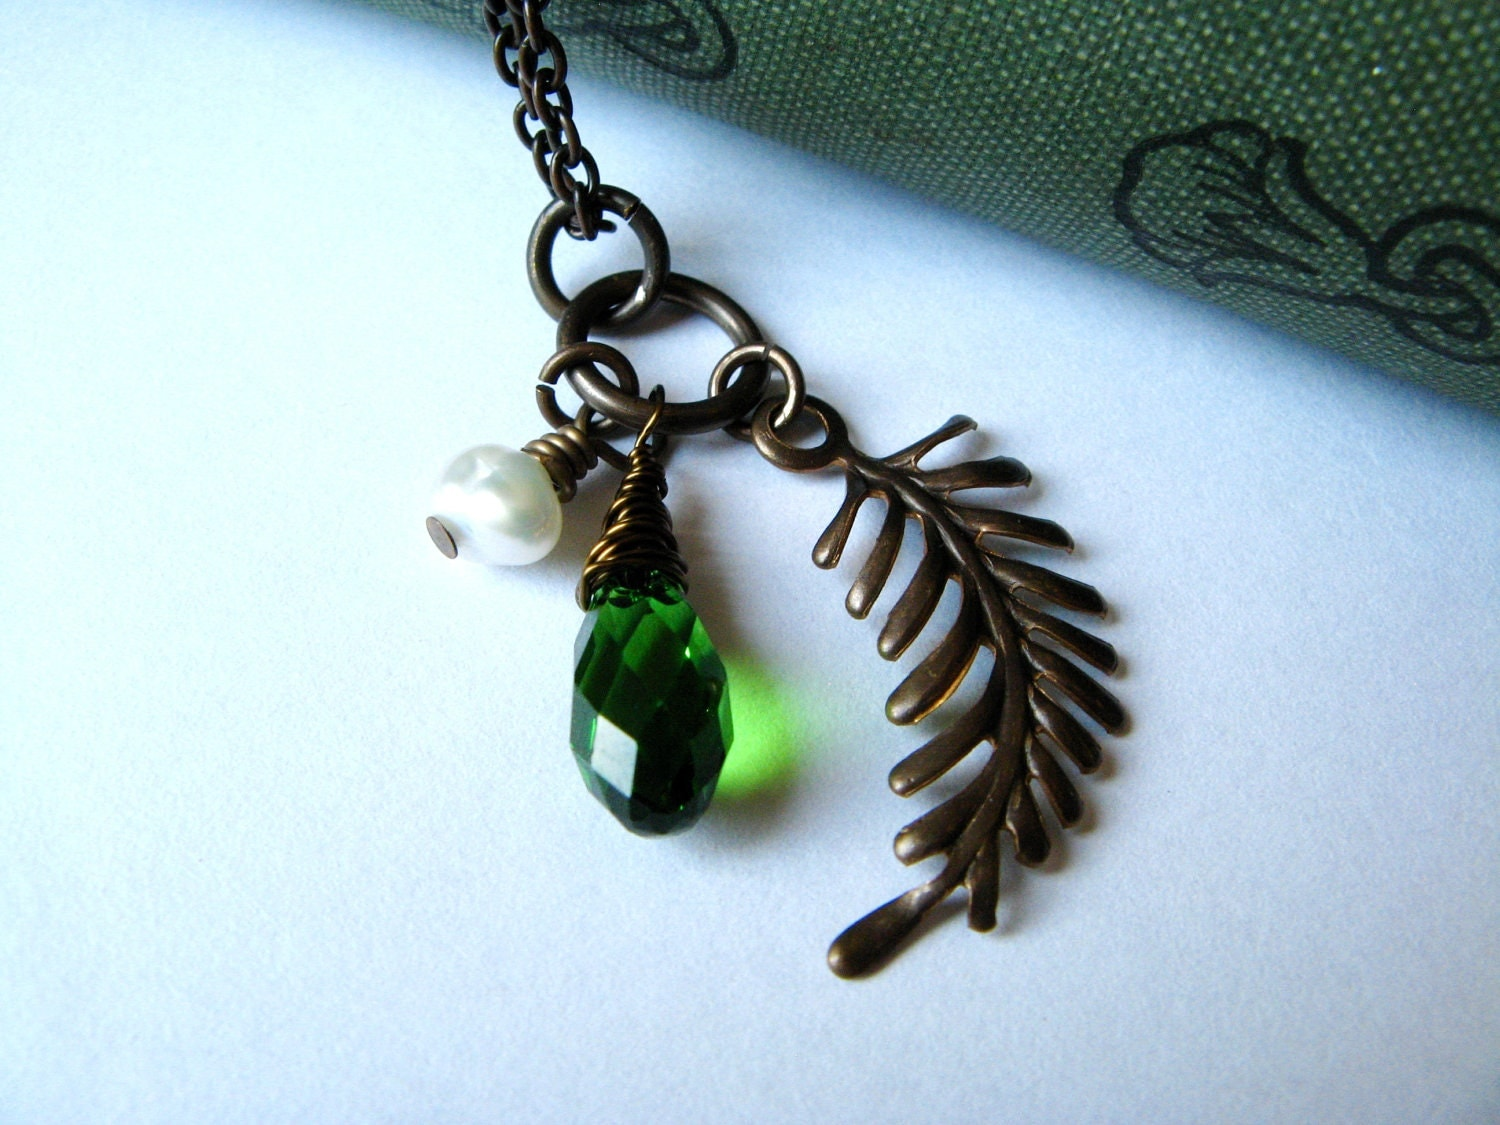 Fern Leaf Pendant with Green Crystal and Freshwater Pearl - Fall Jewelry - RachelRode